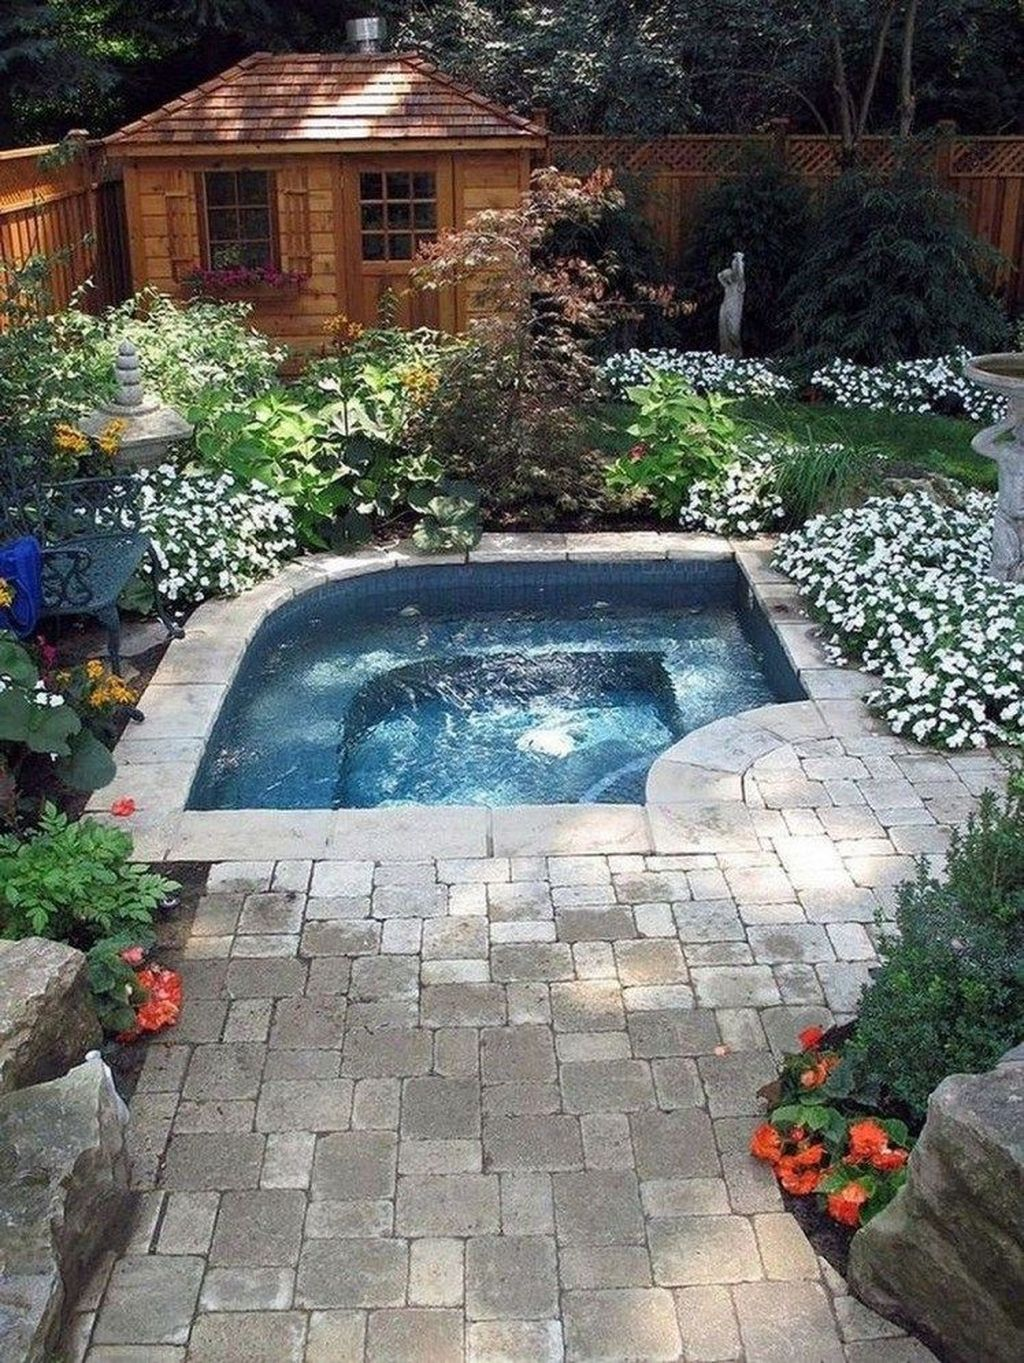 Beautiful Small Pool Backyard Landscaping Ideas Best For Spring And Summertime 27